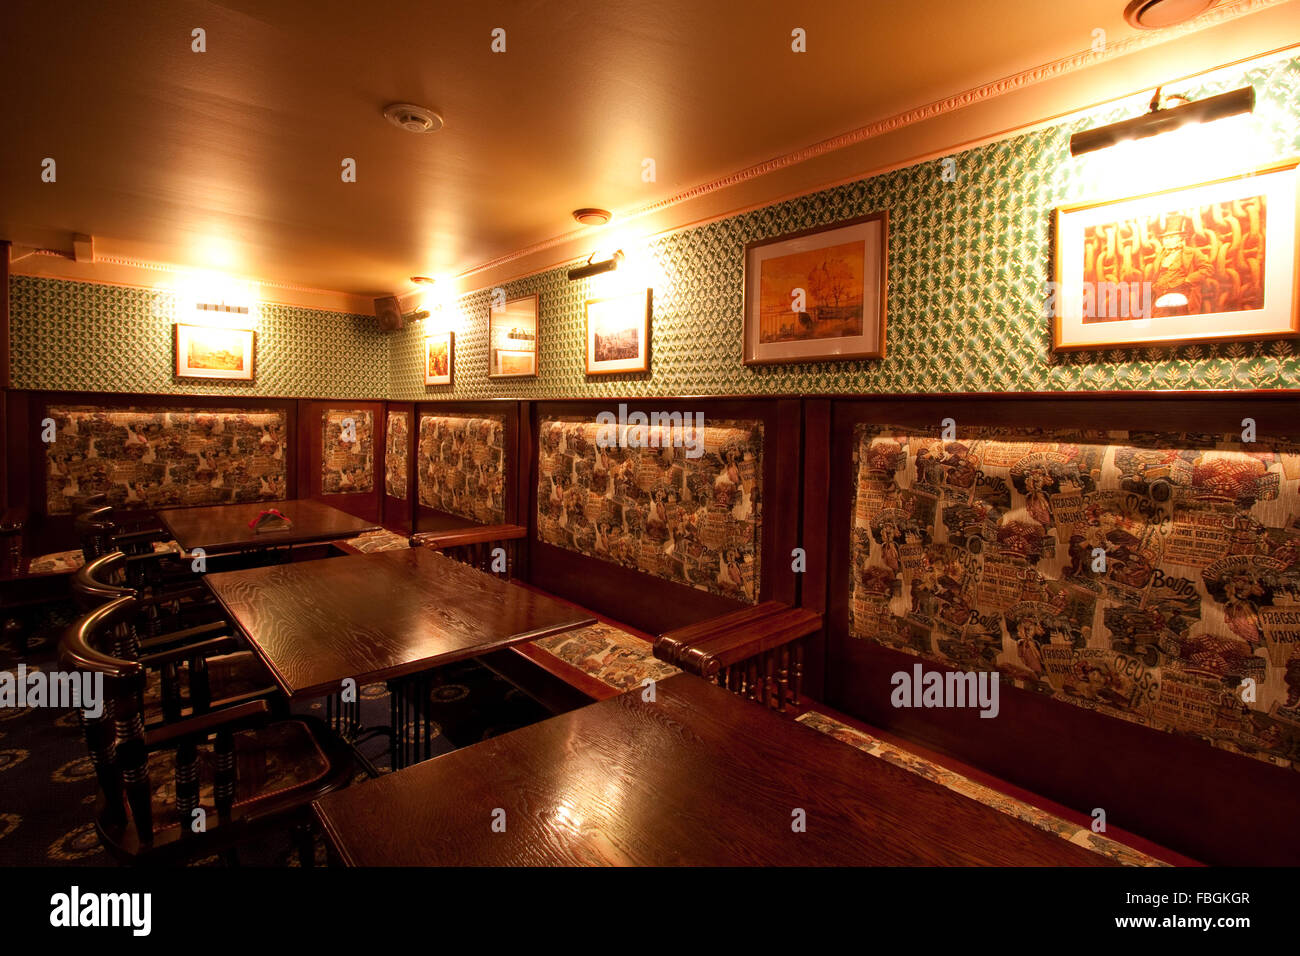 Pub Interior Im Genes De Stock Pub Interior Fotos De Stock Alamy # Muebles Pub Irlandes